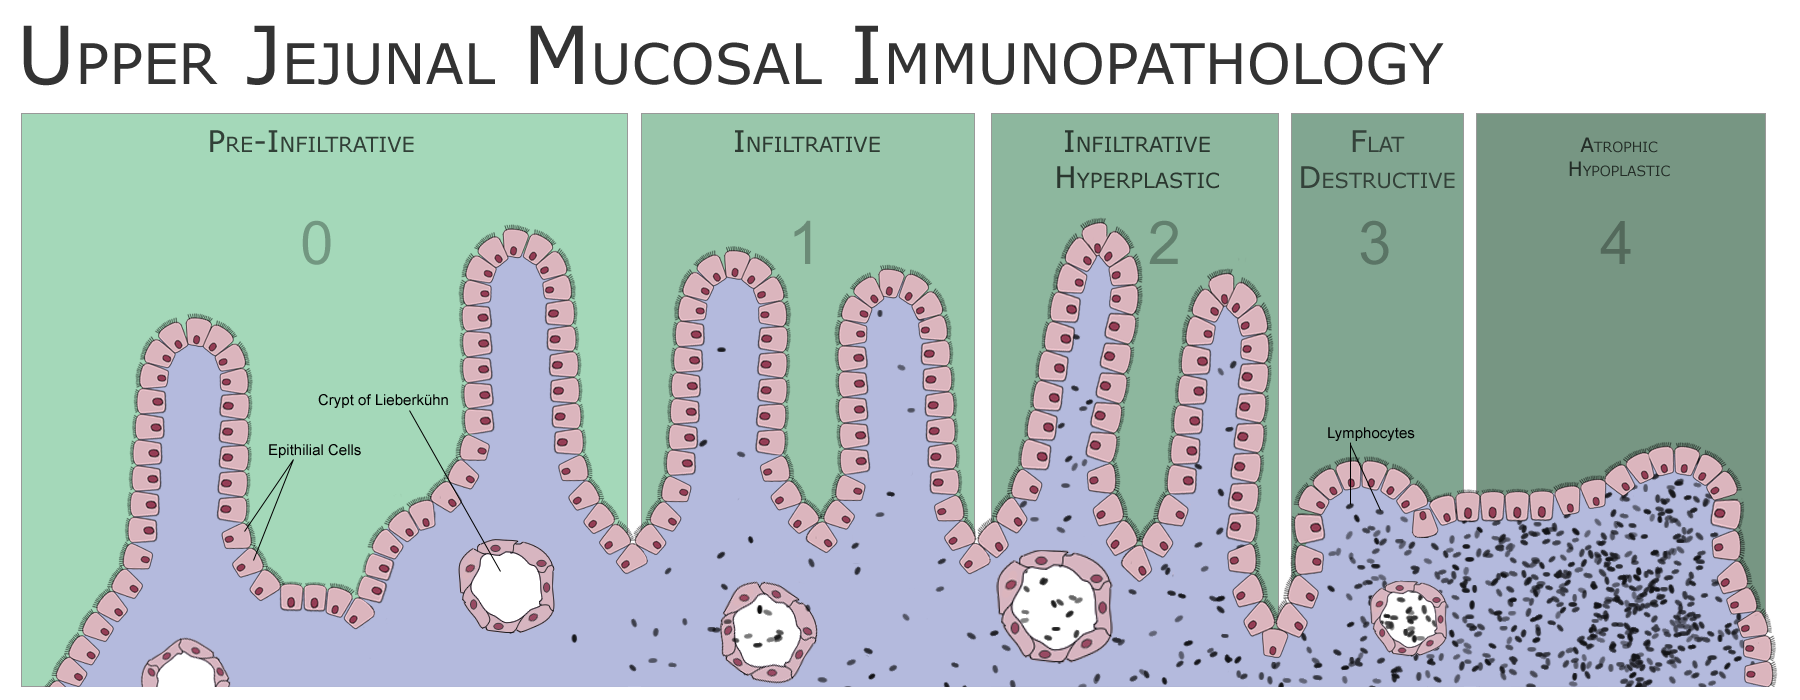 An illustration of the phases of intestine inflammation caused by coeliac disease, with its end-stage of shortened villi and rich lmyphocyte infiltration of the mucosa.